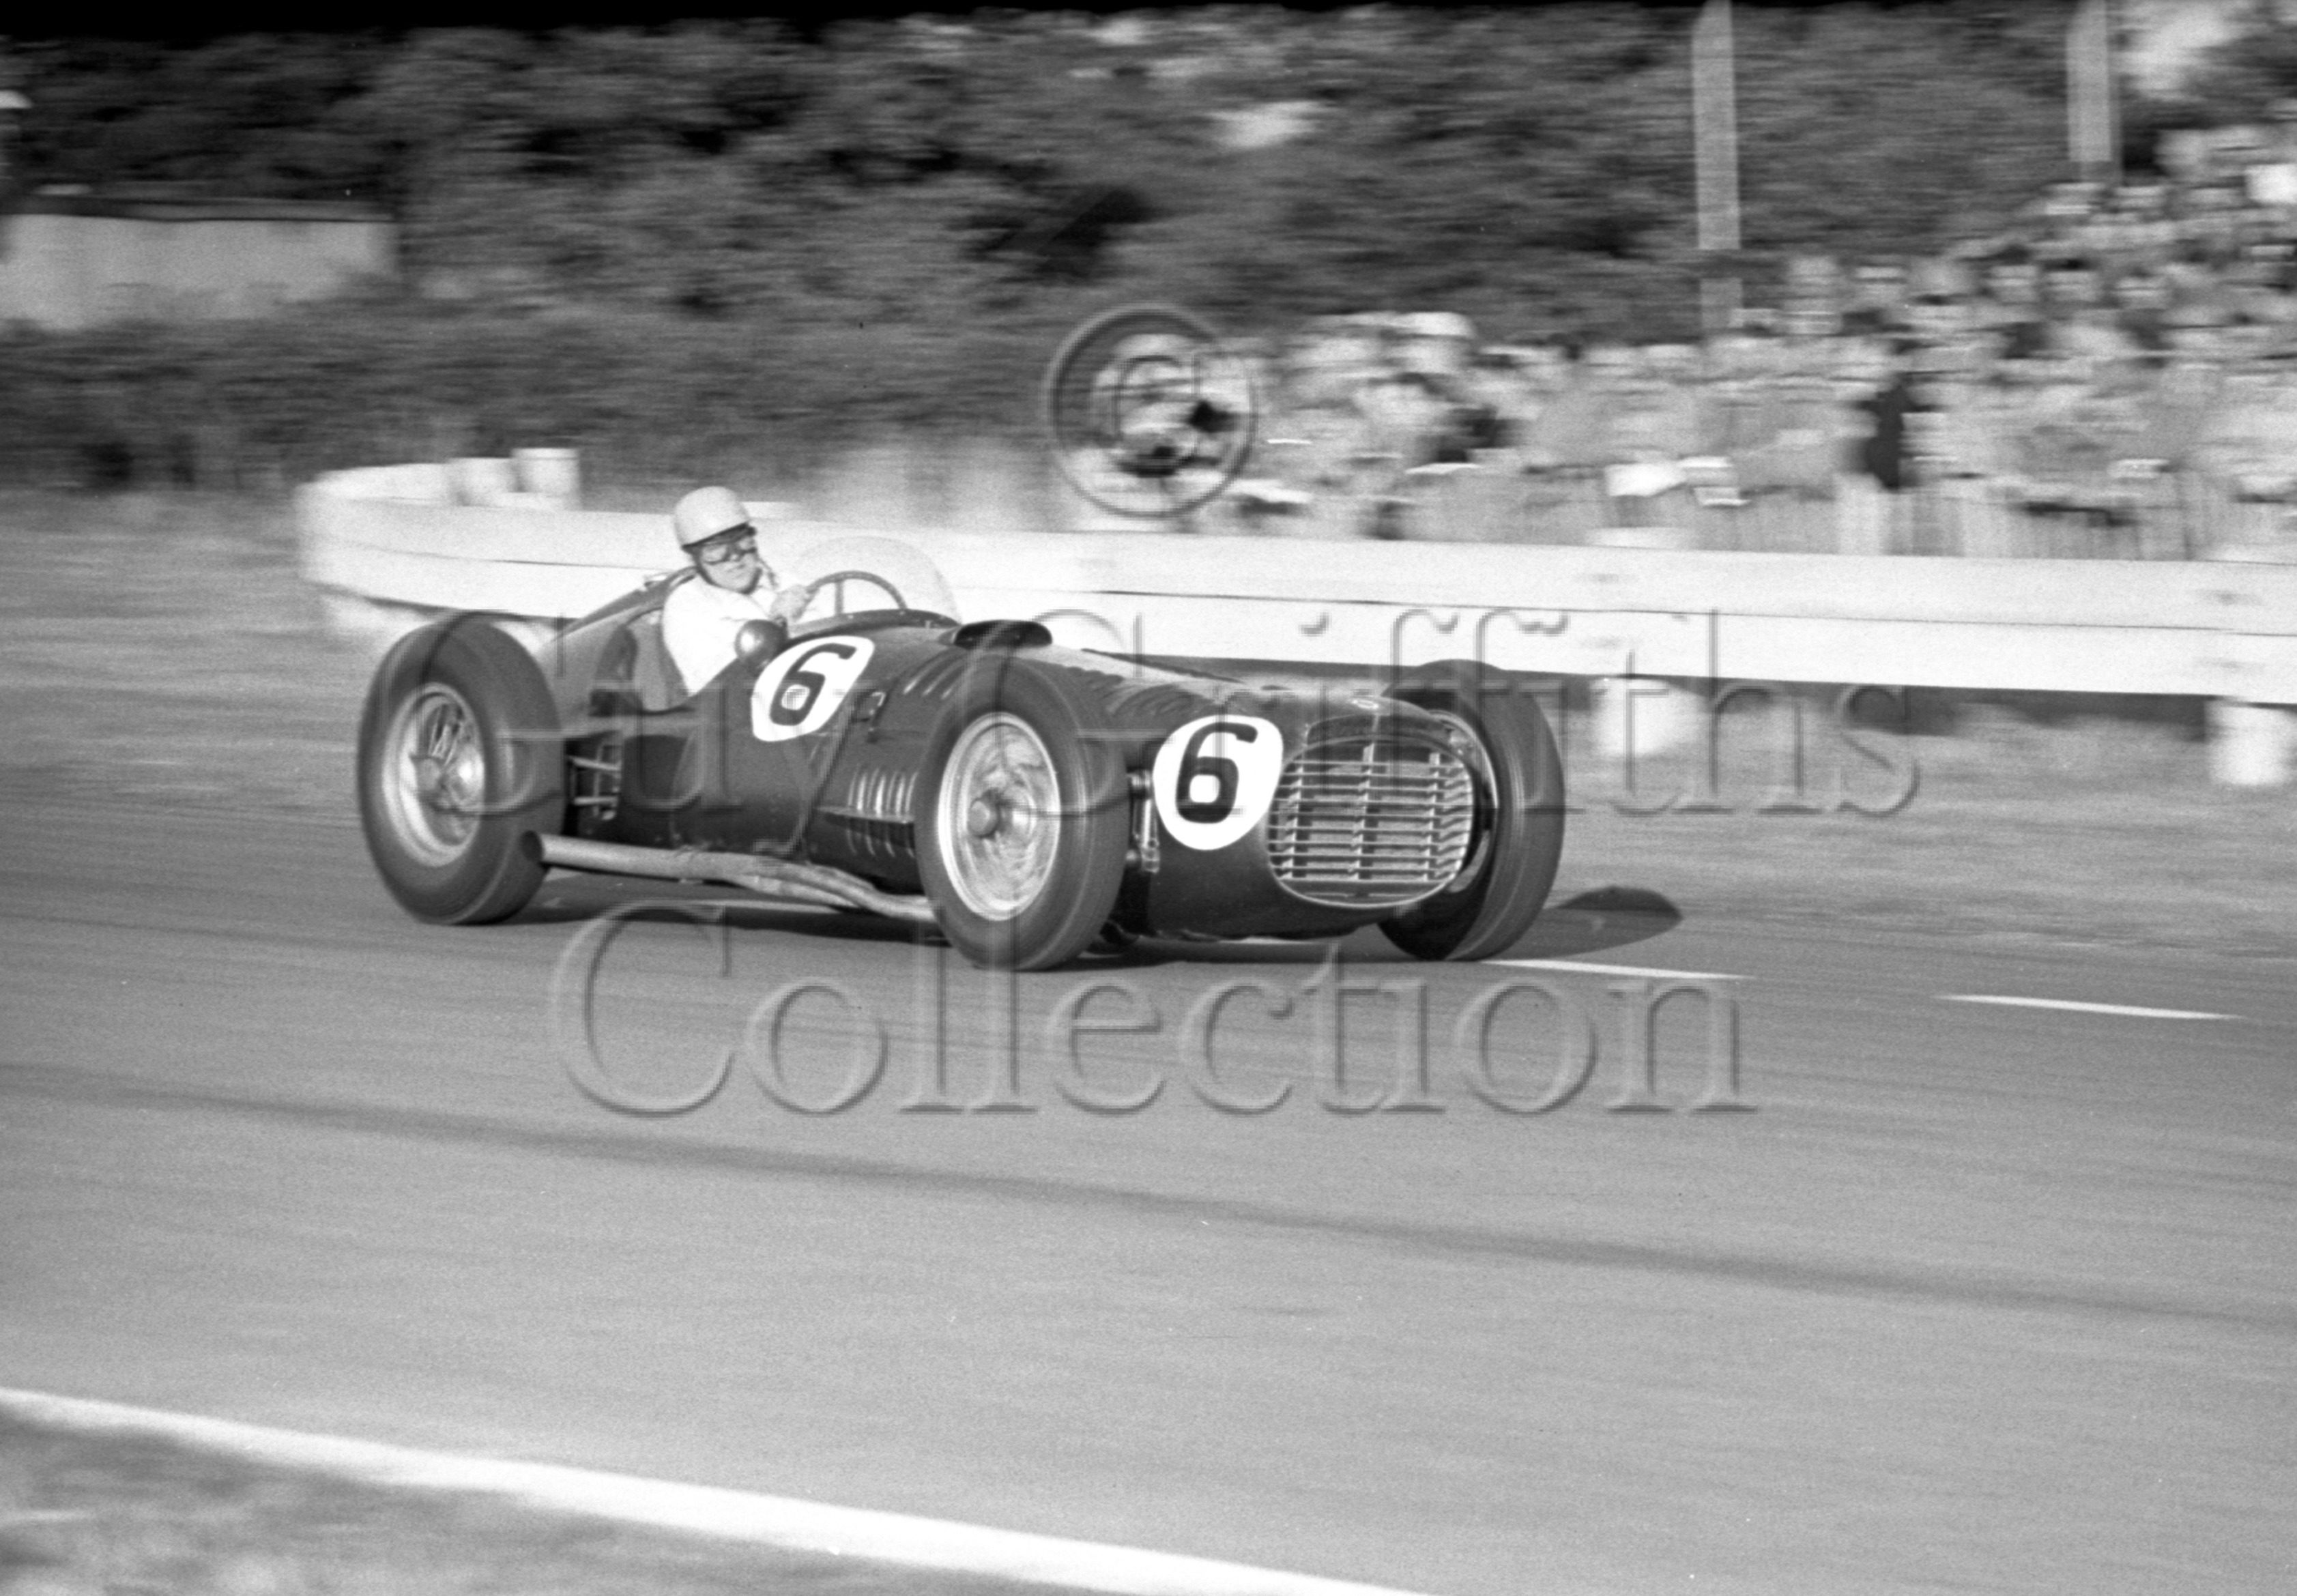 62-543–R-Parnell–BRM—Goodwood—27-09-1952.jpg - The Guy Griffiths Collection